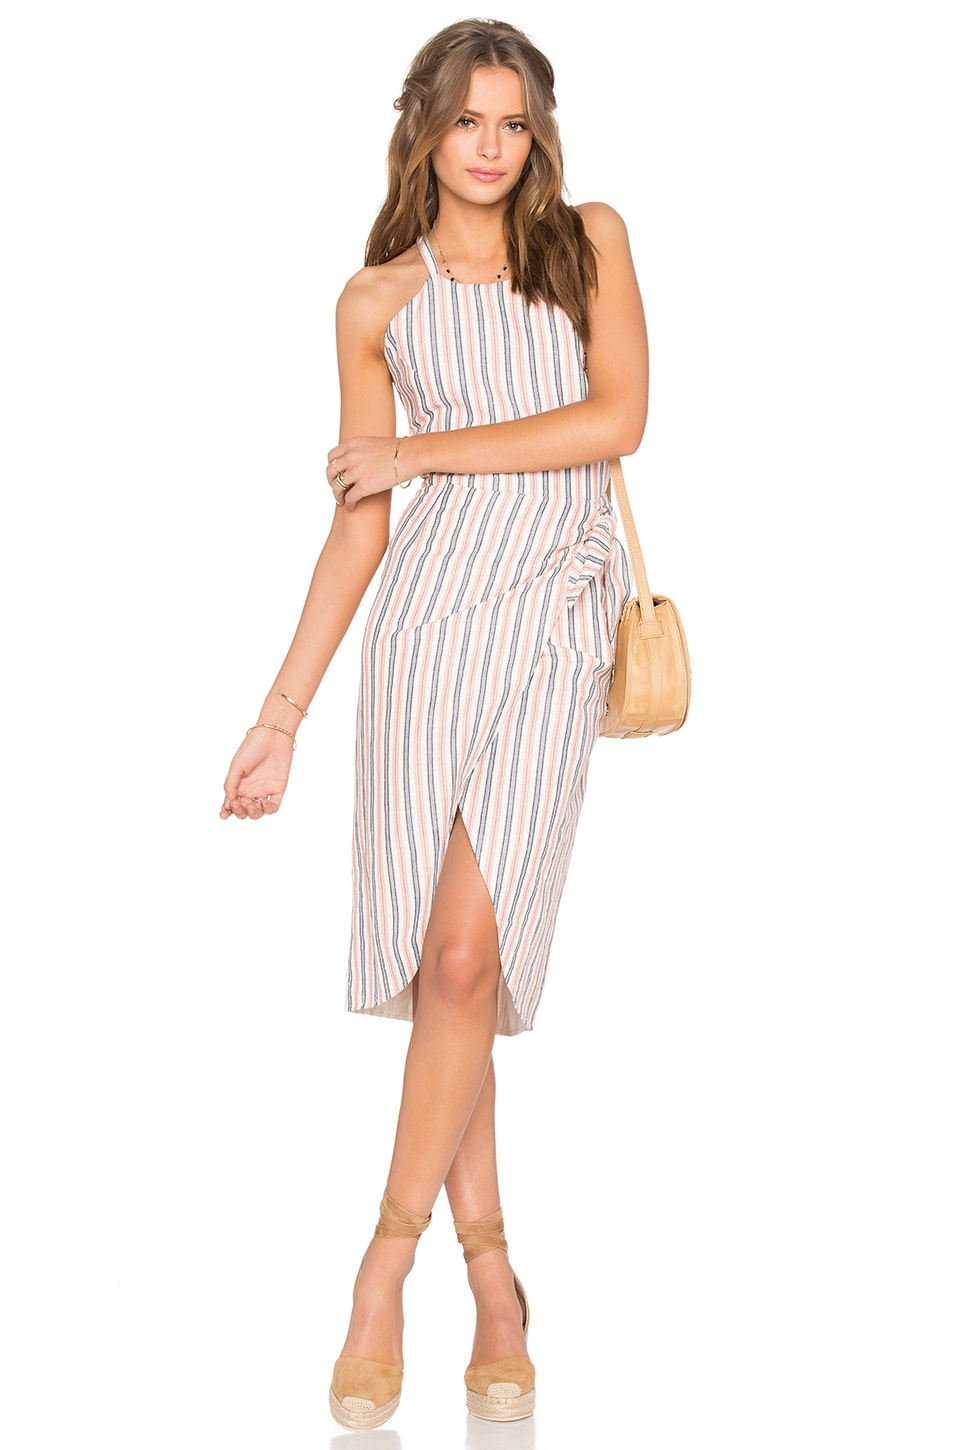 Nassau Wrap Dress by Privacy Please